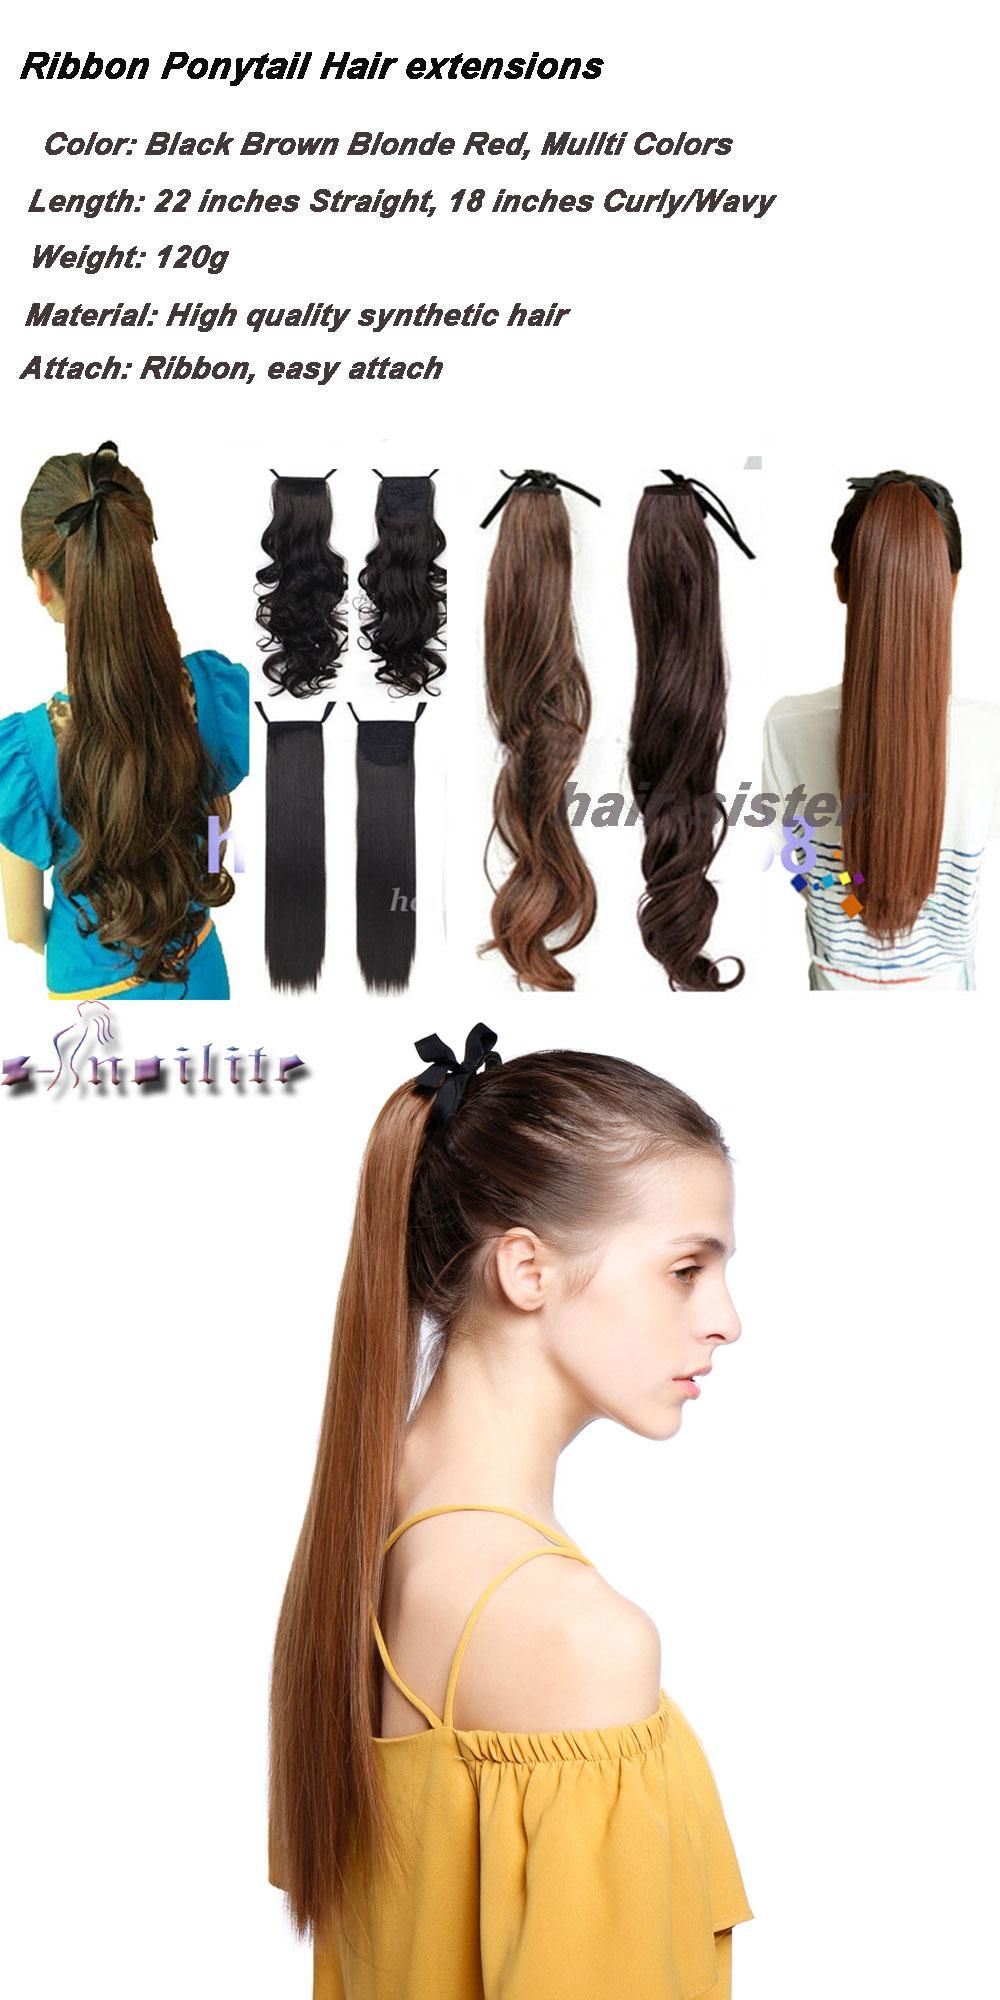 S Noilite 22 Inches Straight Clip In Ponytail Hair Extensions